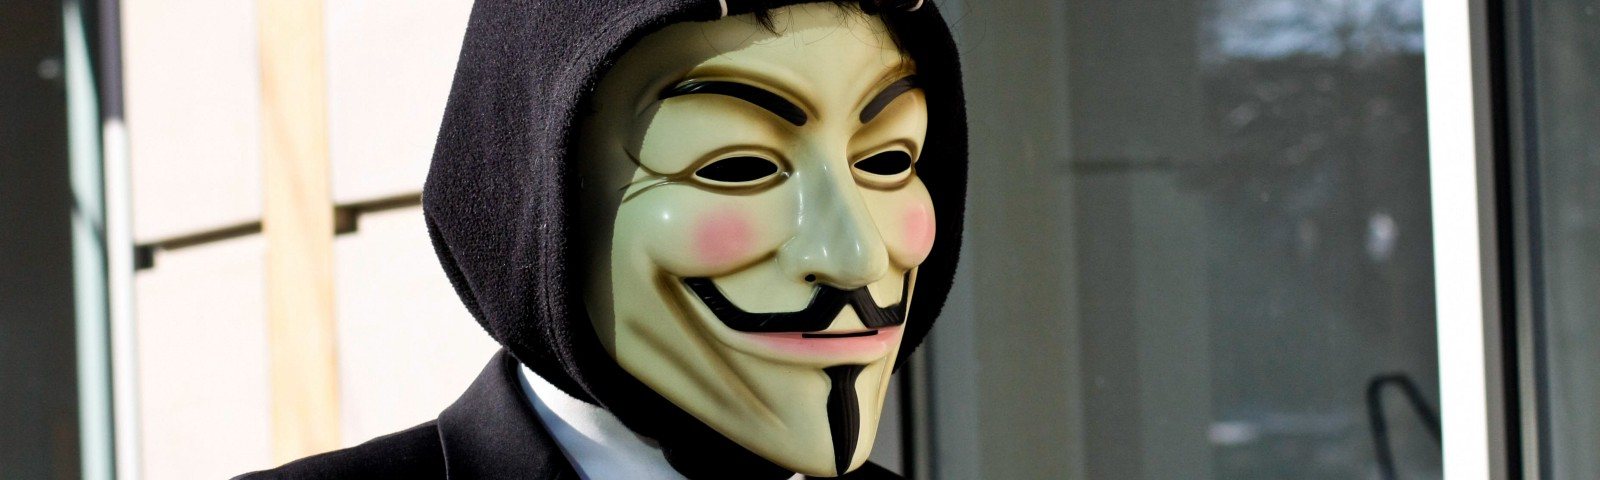 How To Be Anonymous Online. It's Time To Take Back Our Control on…   by Zen Chan   Medium